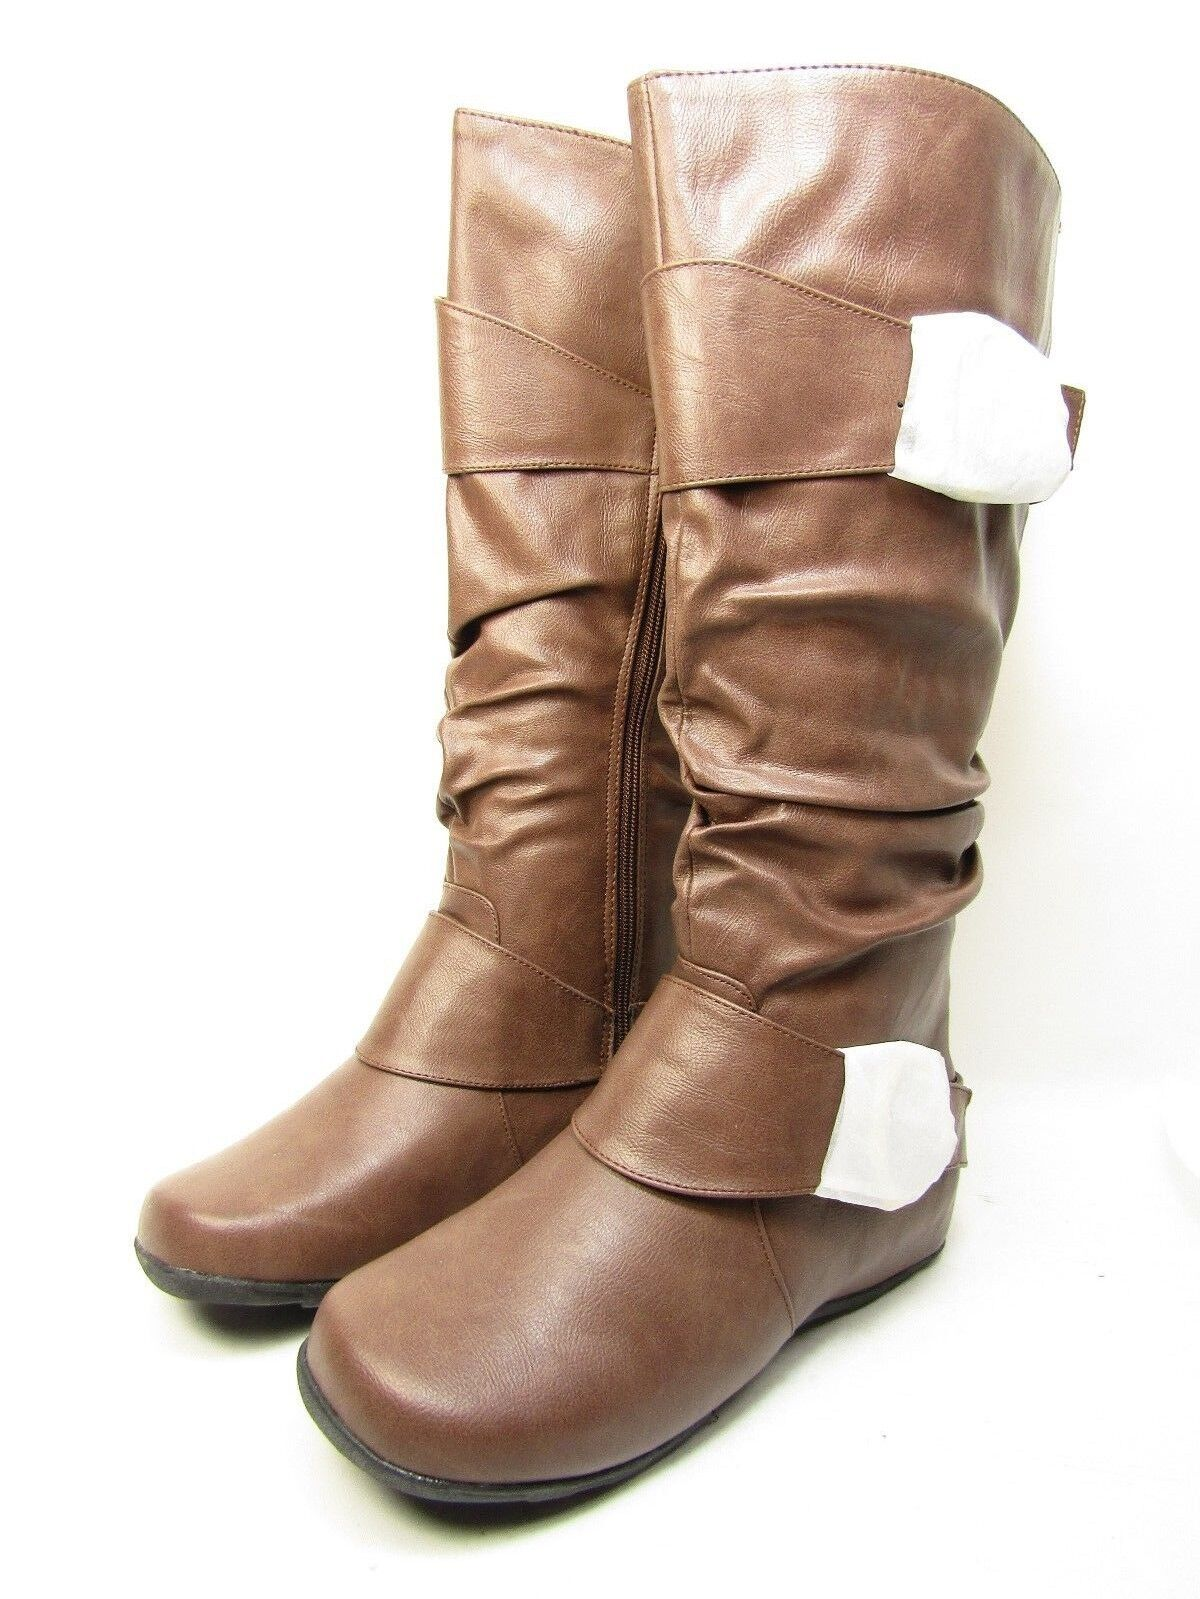 Journee Collection Riding  Paris Womens Slouch Riding Collection Boots Brown Size 7.5 bb6825